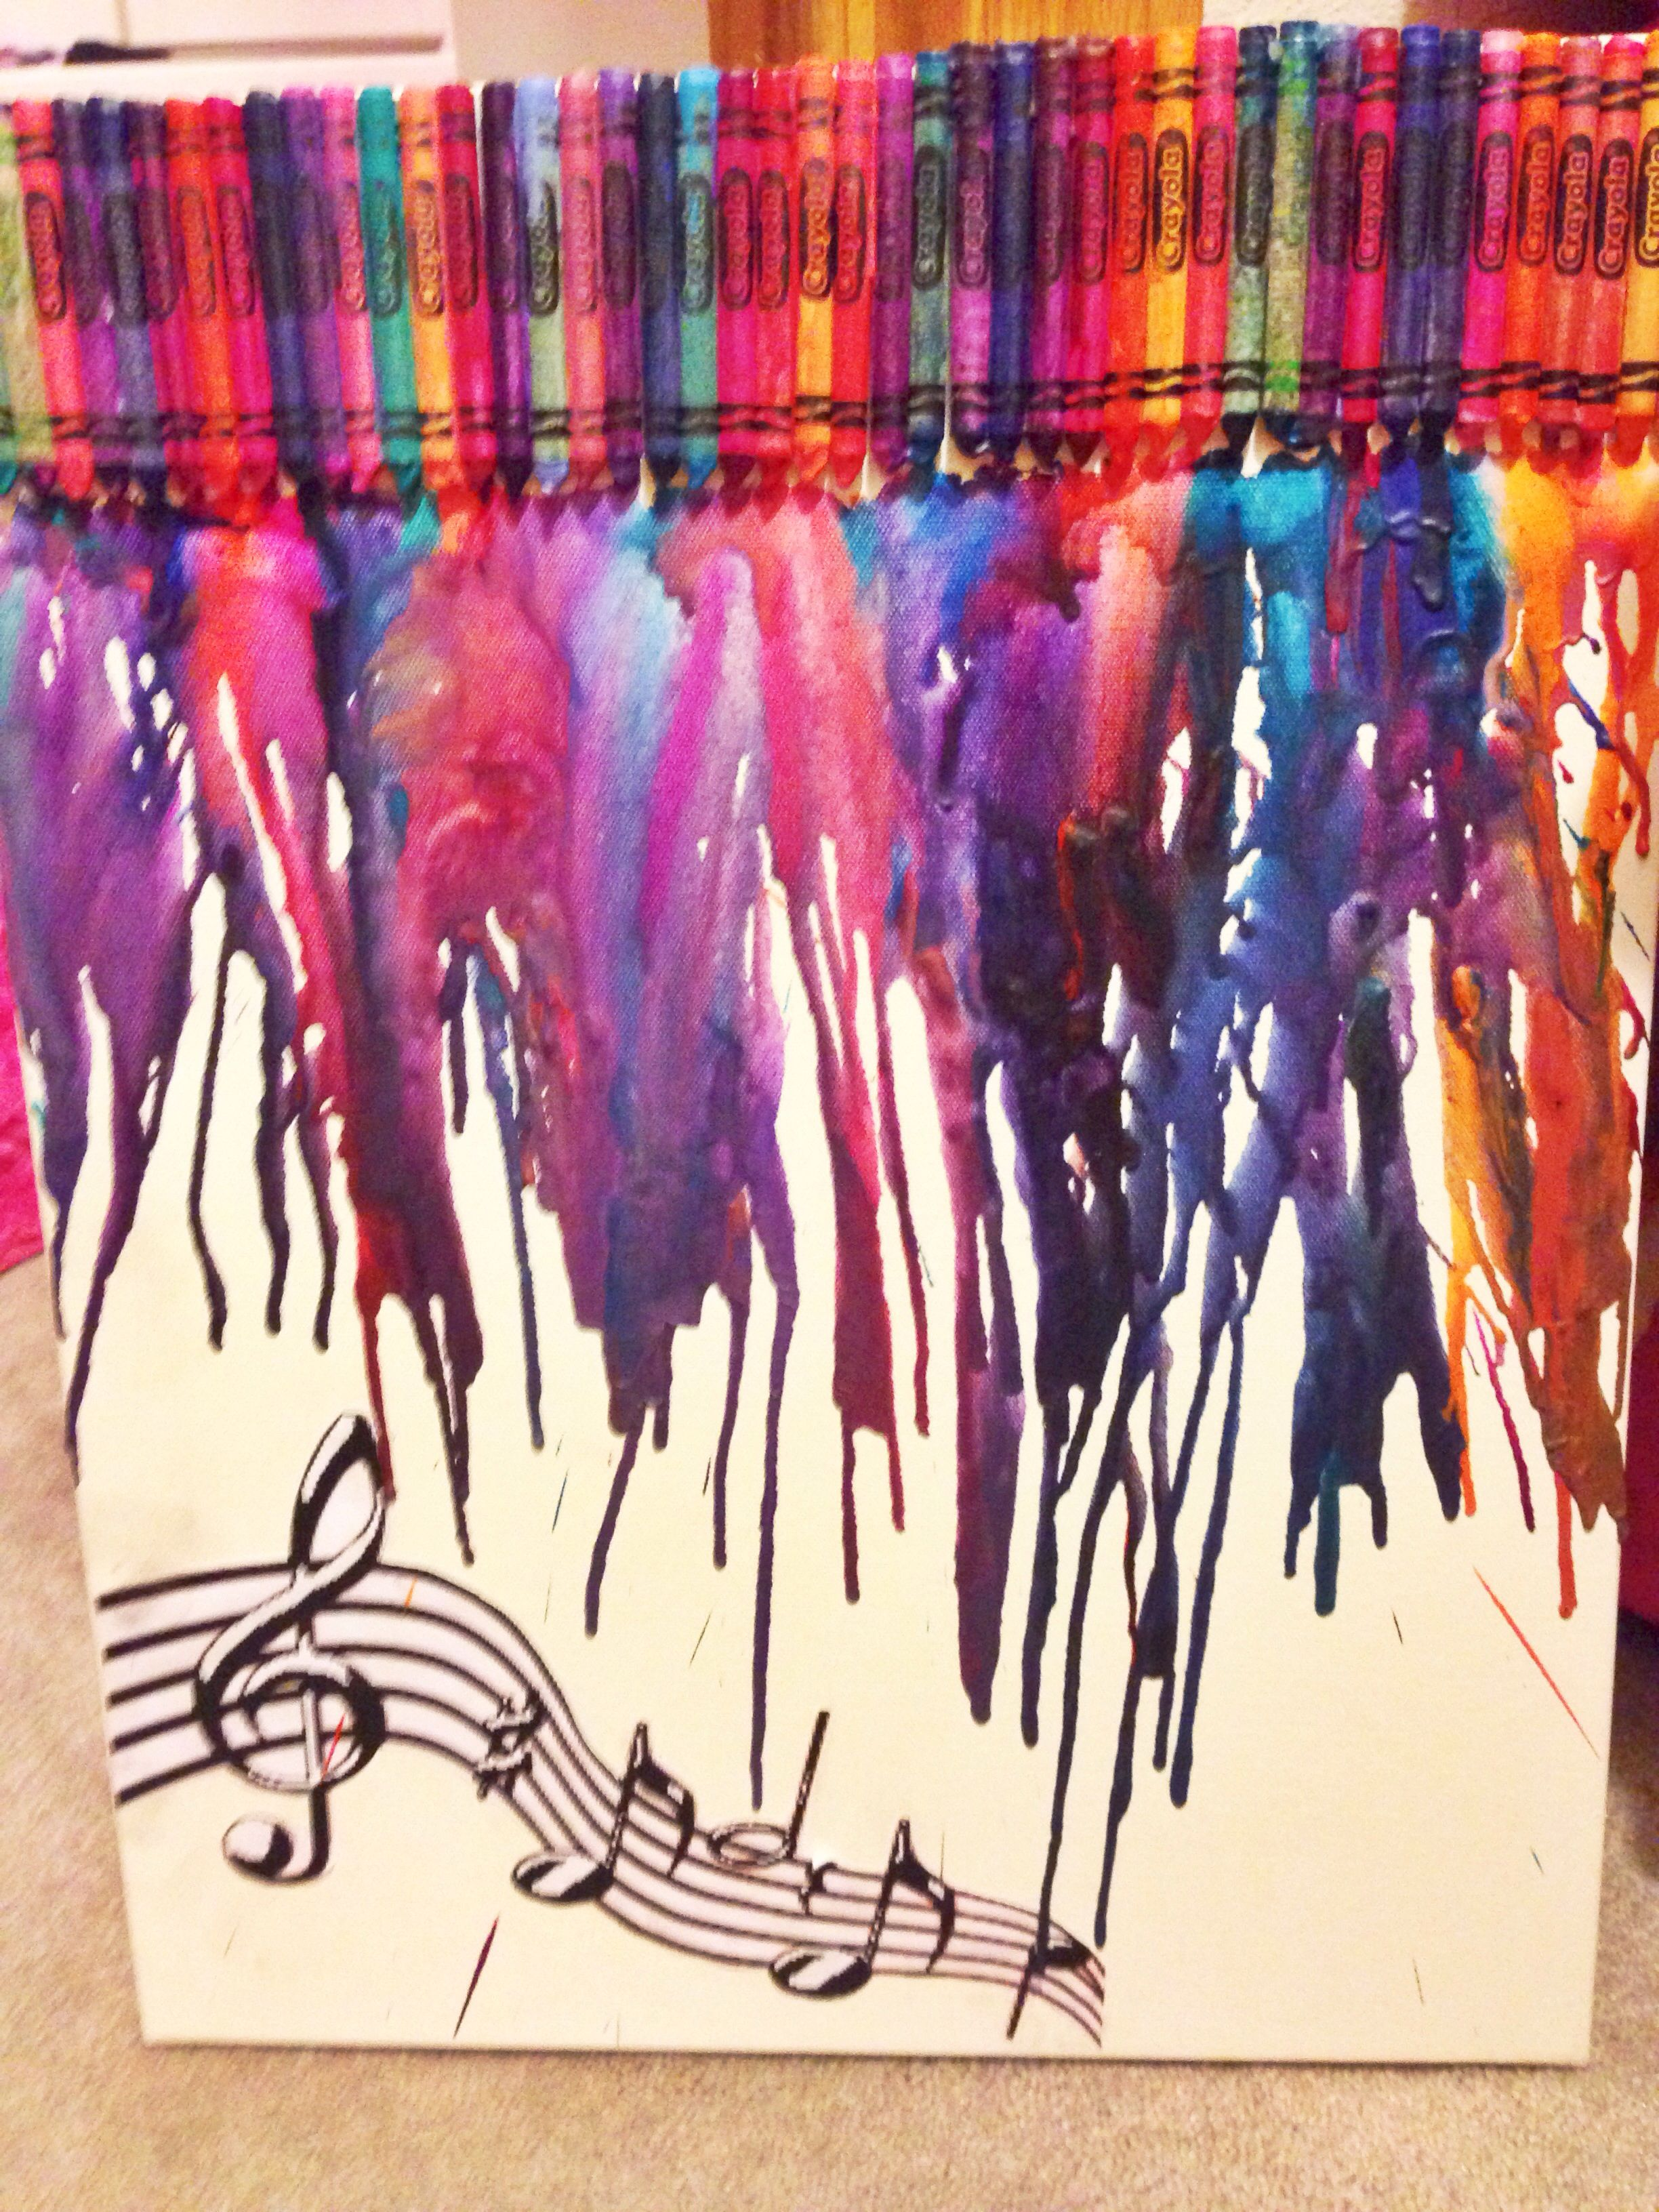 Not Just Another Crayon Art Musical Decal Added Darker